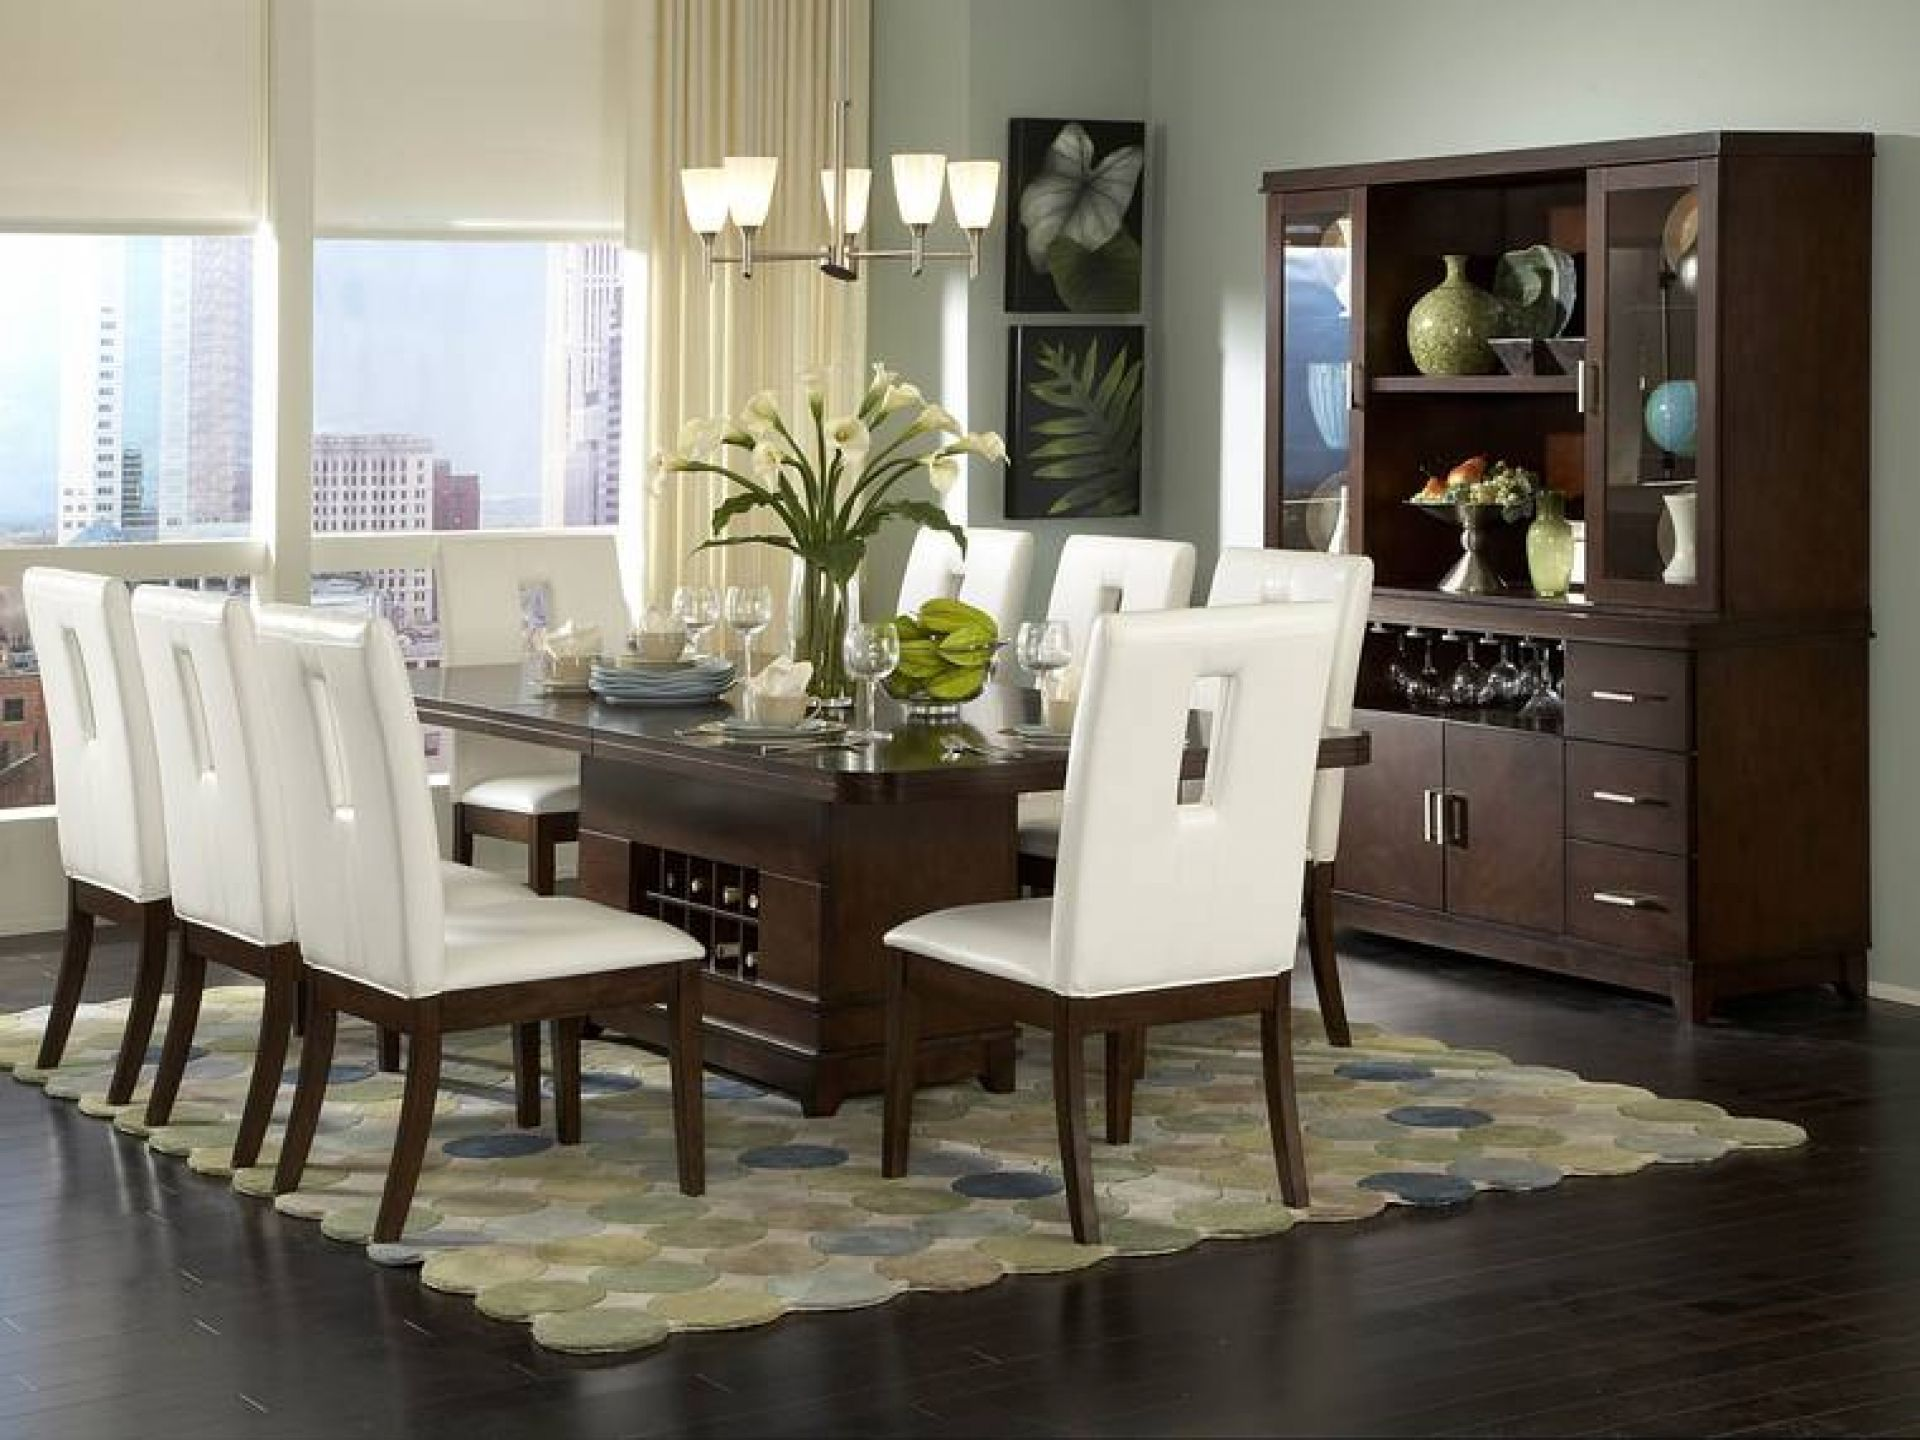 Contemporary Dining Room Chairs Endearing How To Give Your Home A Budget Friendly Makeover  Dining Room Decorating Inspiration